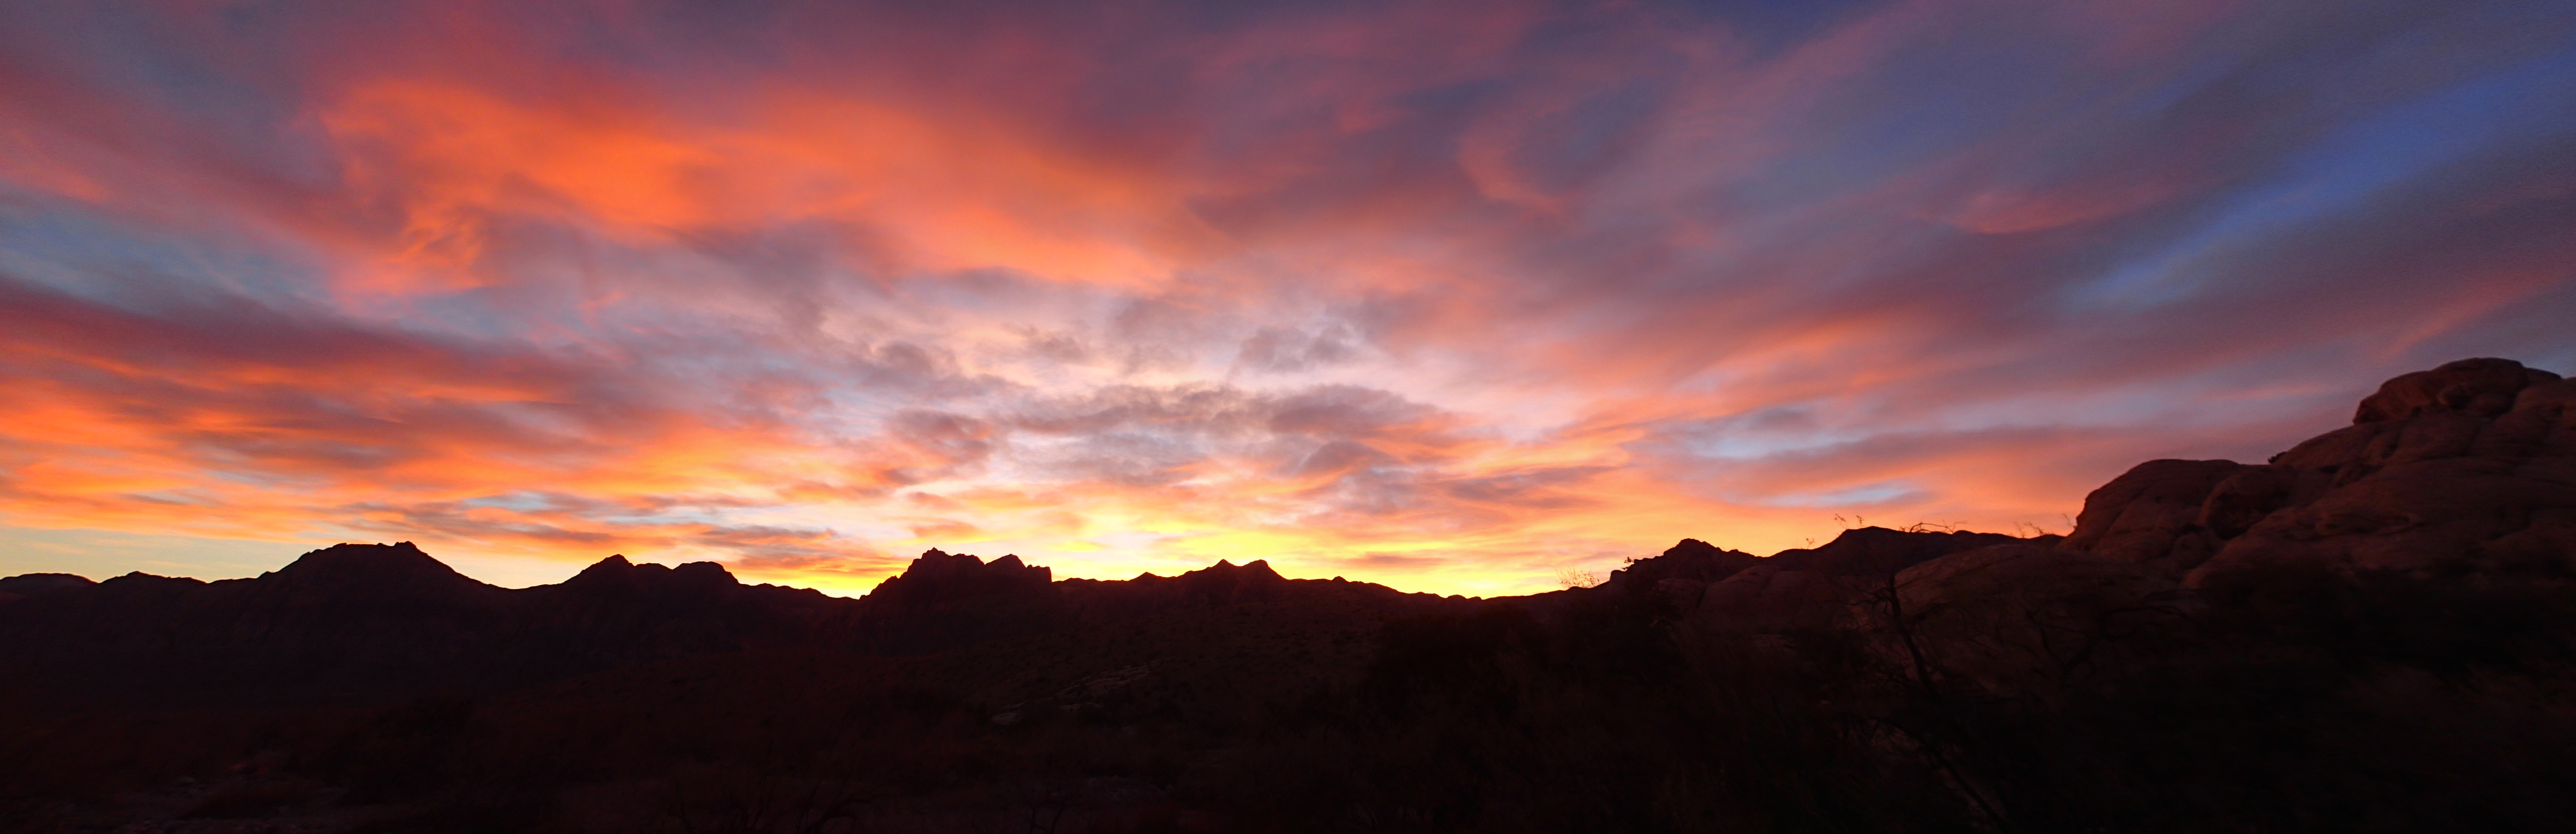 Amazing sunset at the Red Rock Canyon